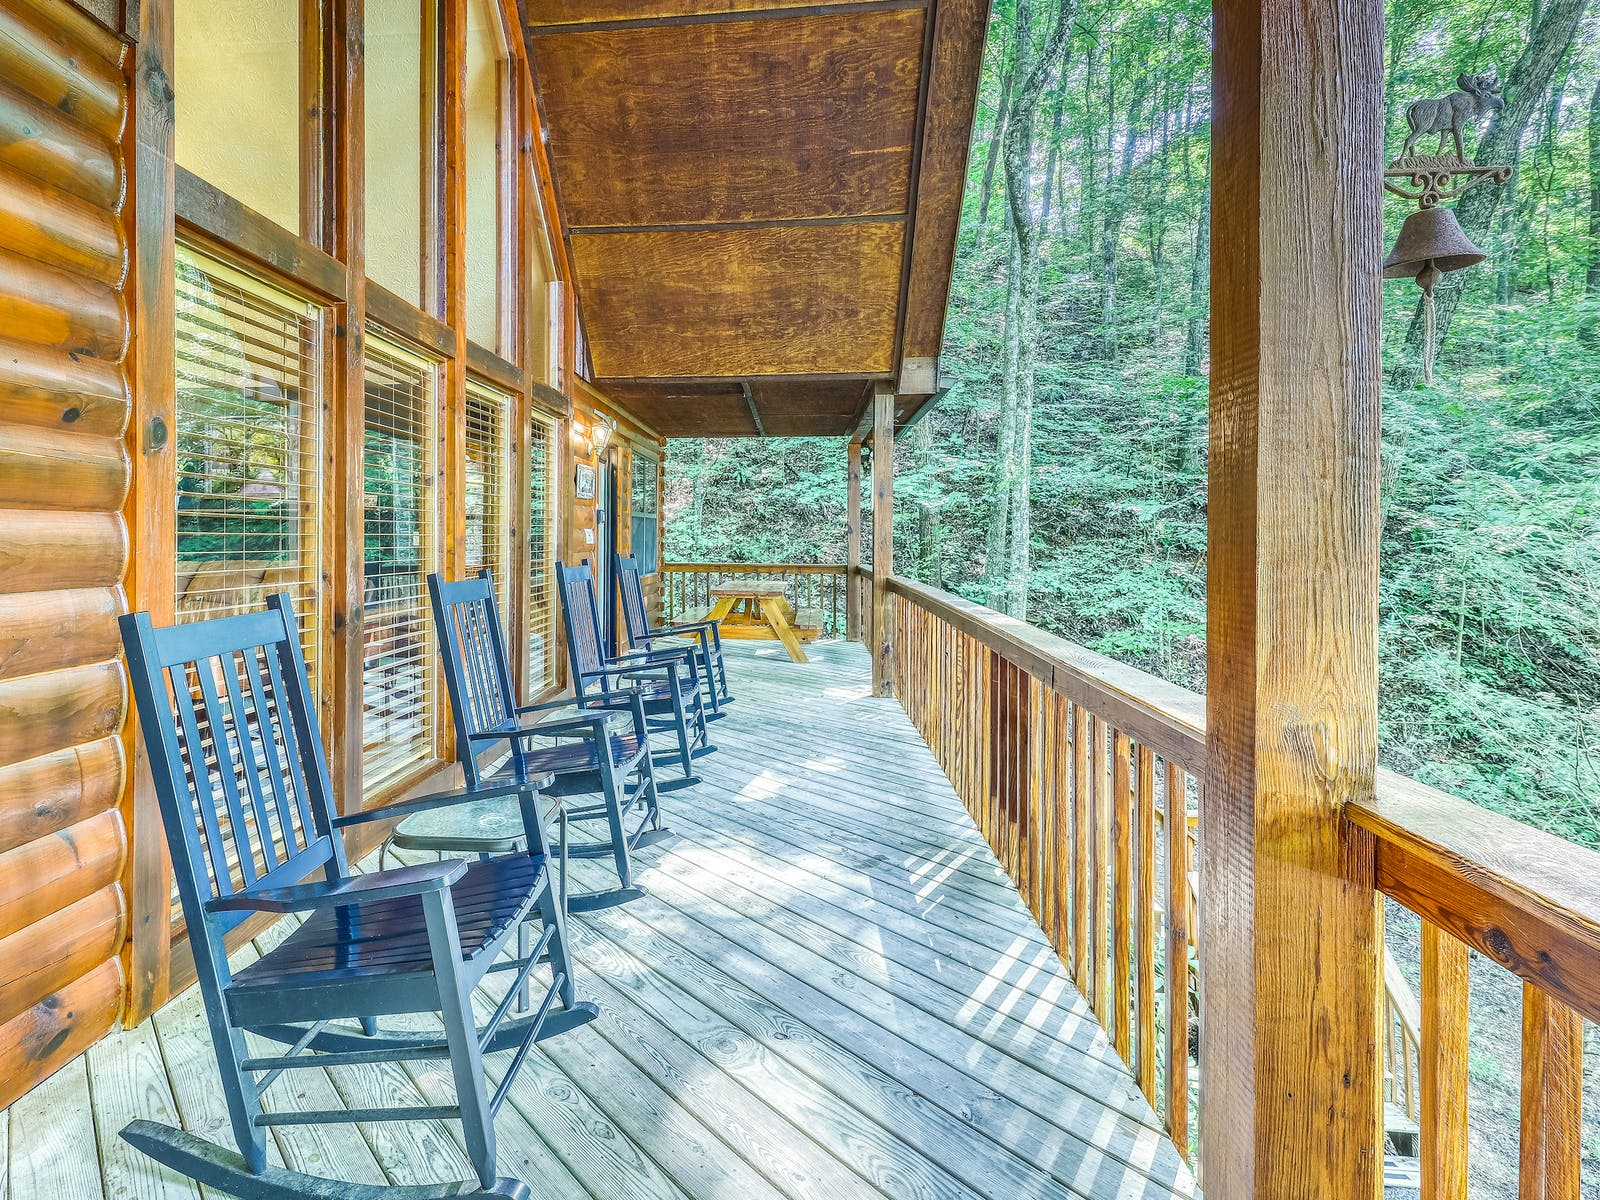 Vacation rental porch in Pigeon Forge, TN with views of the surrounding woods